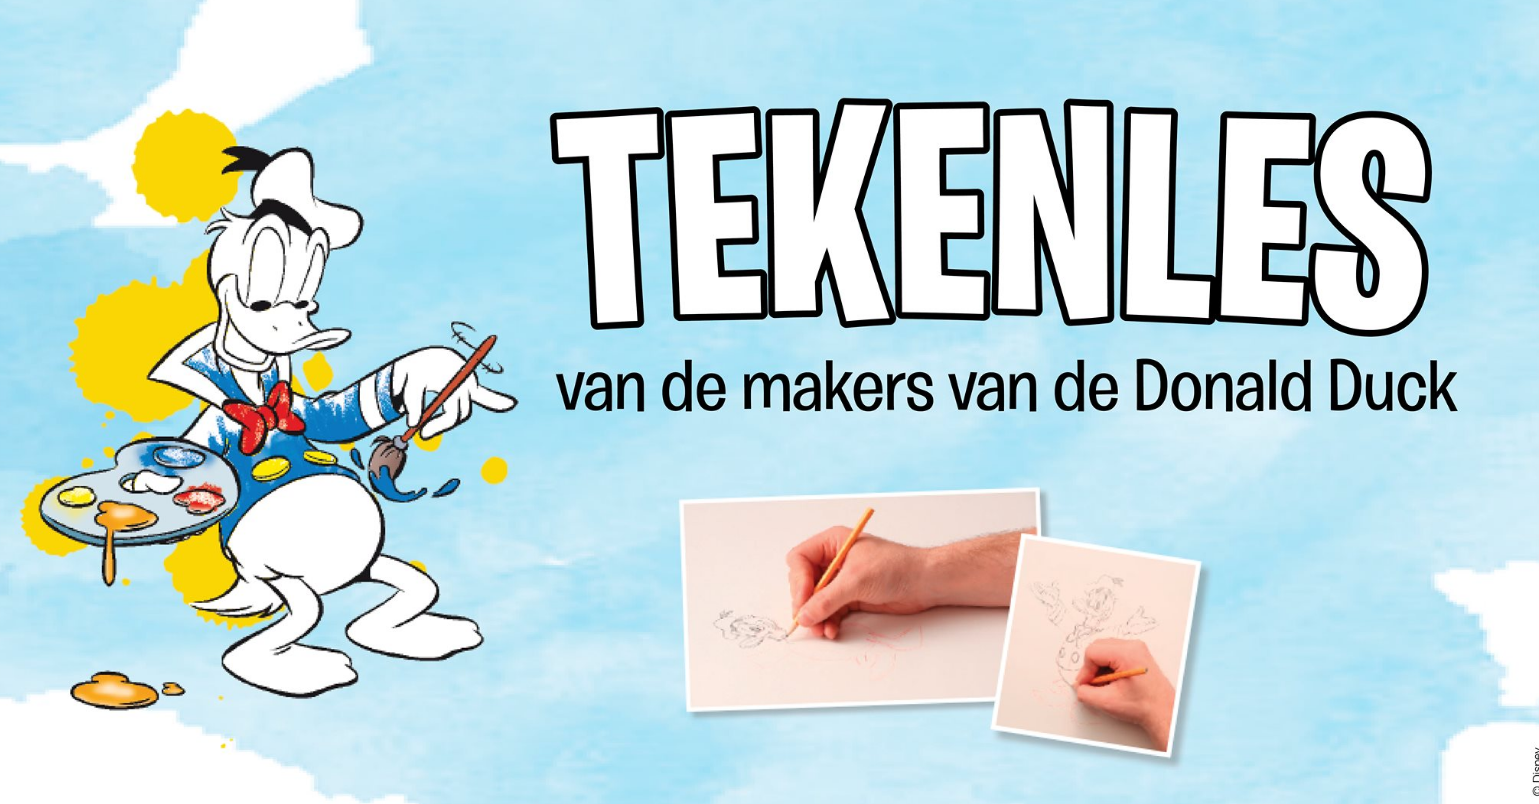 Donald Duck tekenles op Facebook